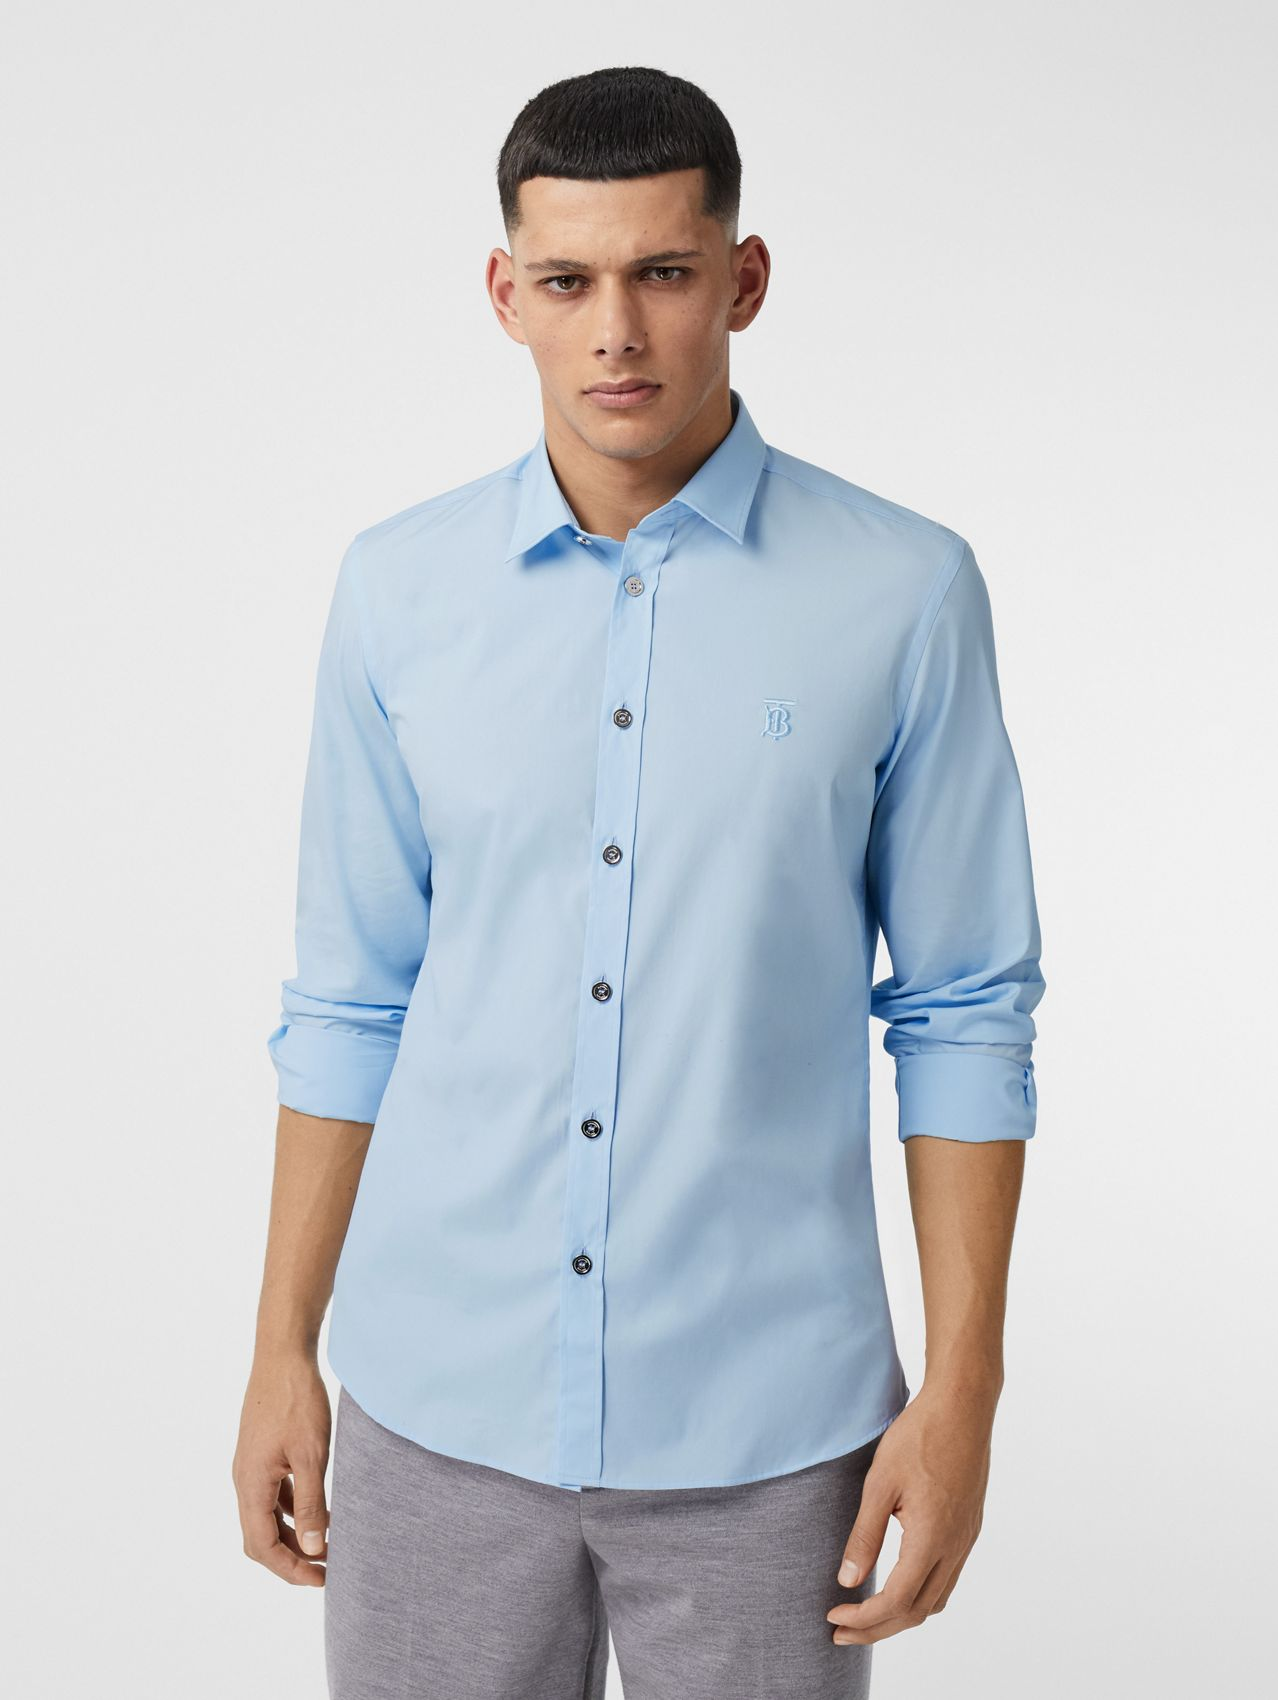 Monogram Motif Stretch Cotton Poplin Shirt in Pale Blue